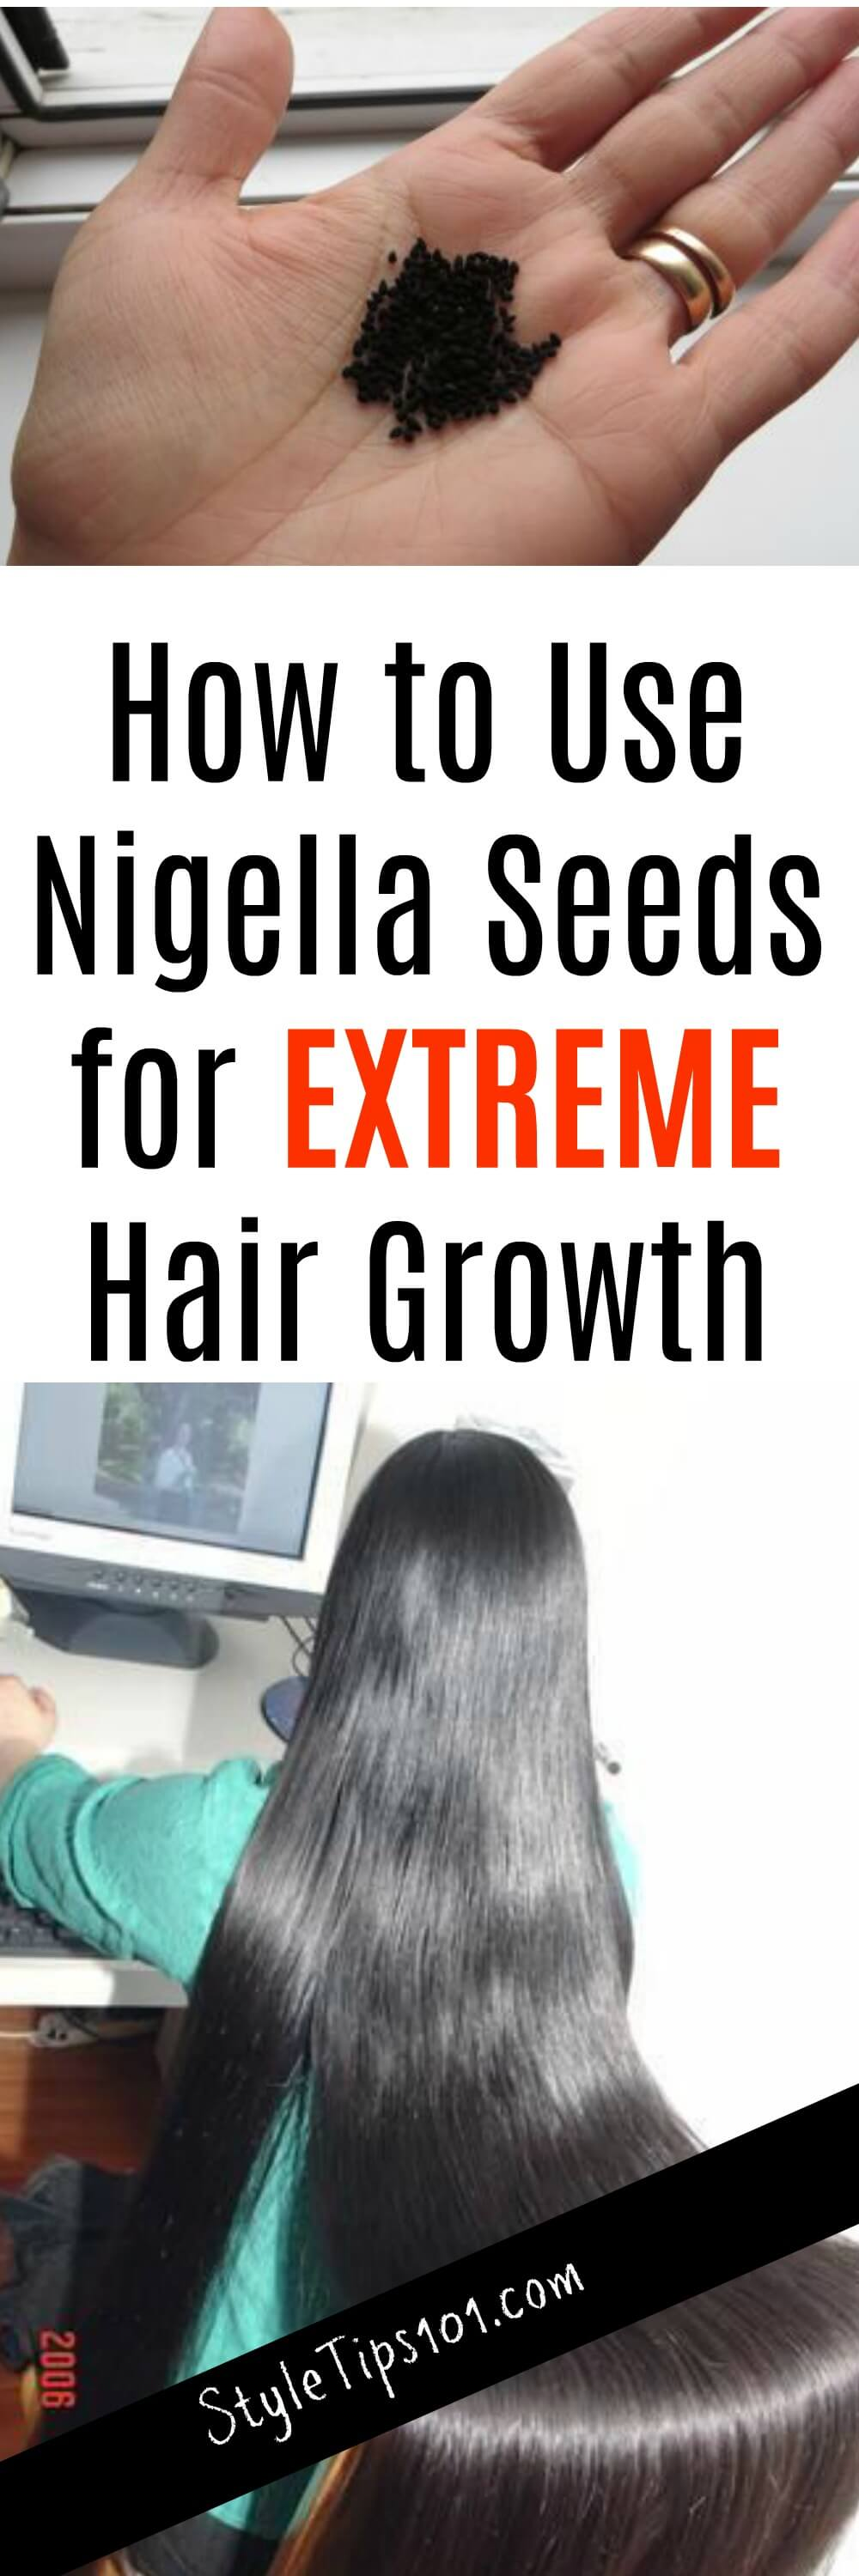 Nigella seeds have properties that encourage fast hair growth and overall hair health. Learn how to grow nigella seeds for hair growth with this DIY recipe.